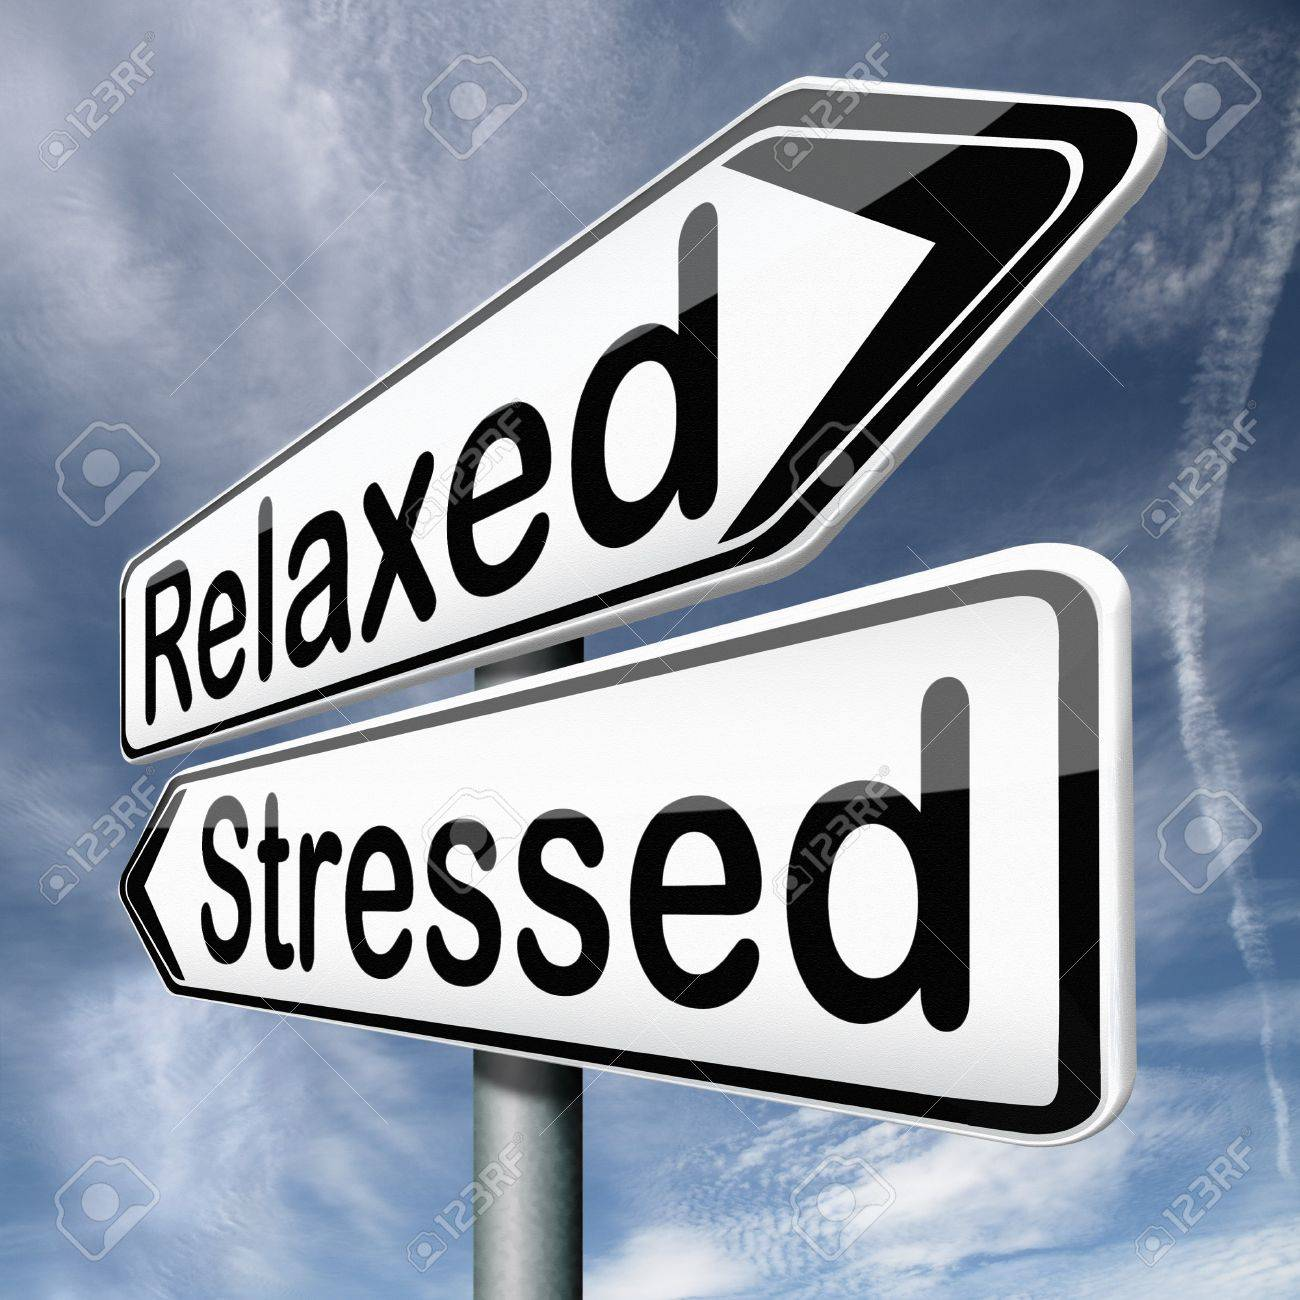 stress therapy and management helps in relaxation reduce tension and relief negativity become relaxed not stressed reduction of negative vibes destressing trough meditation and concentration Stock Photo - 17411736